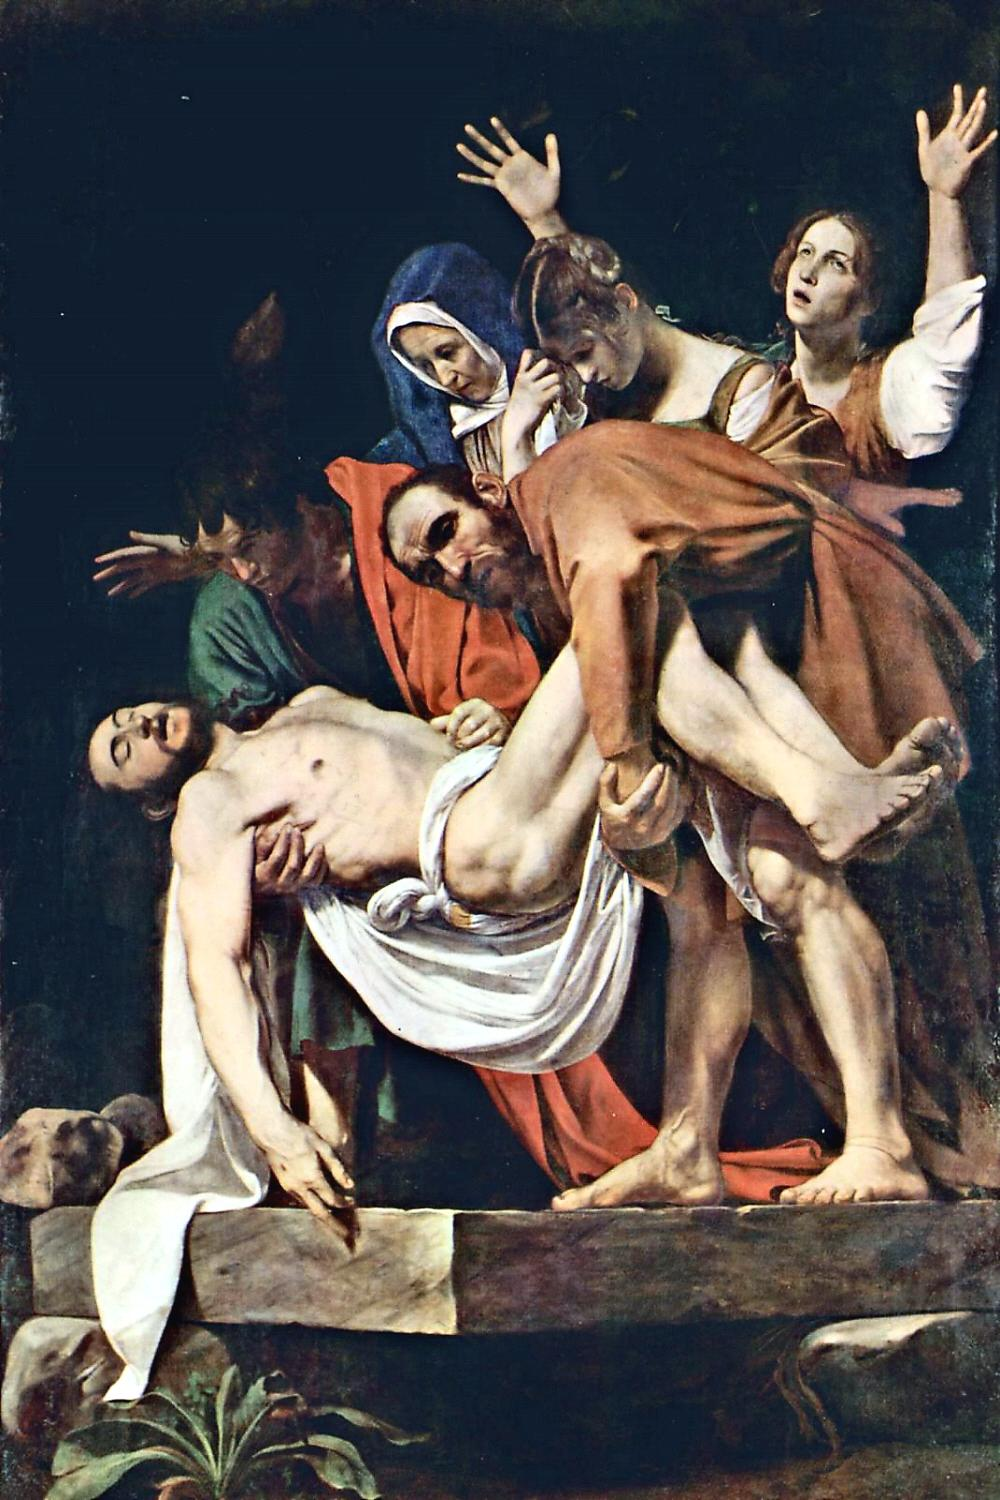 01 Michelangelo Merisi da Caravaggio. The Entombment of Christ. 1602-03